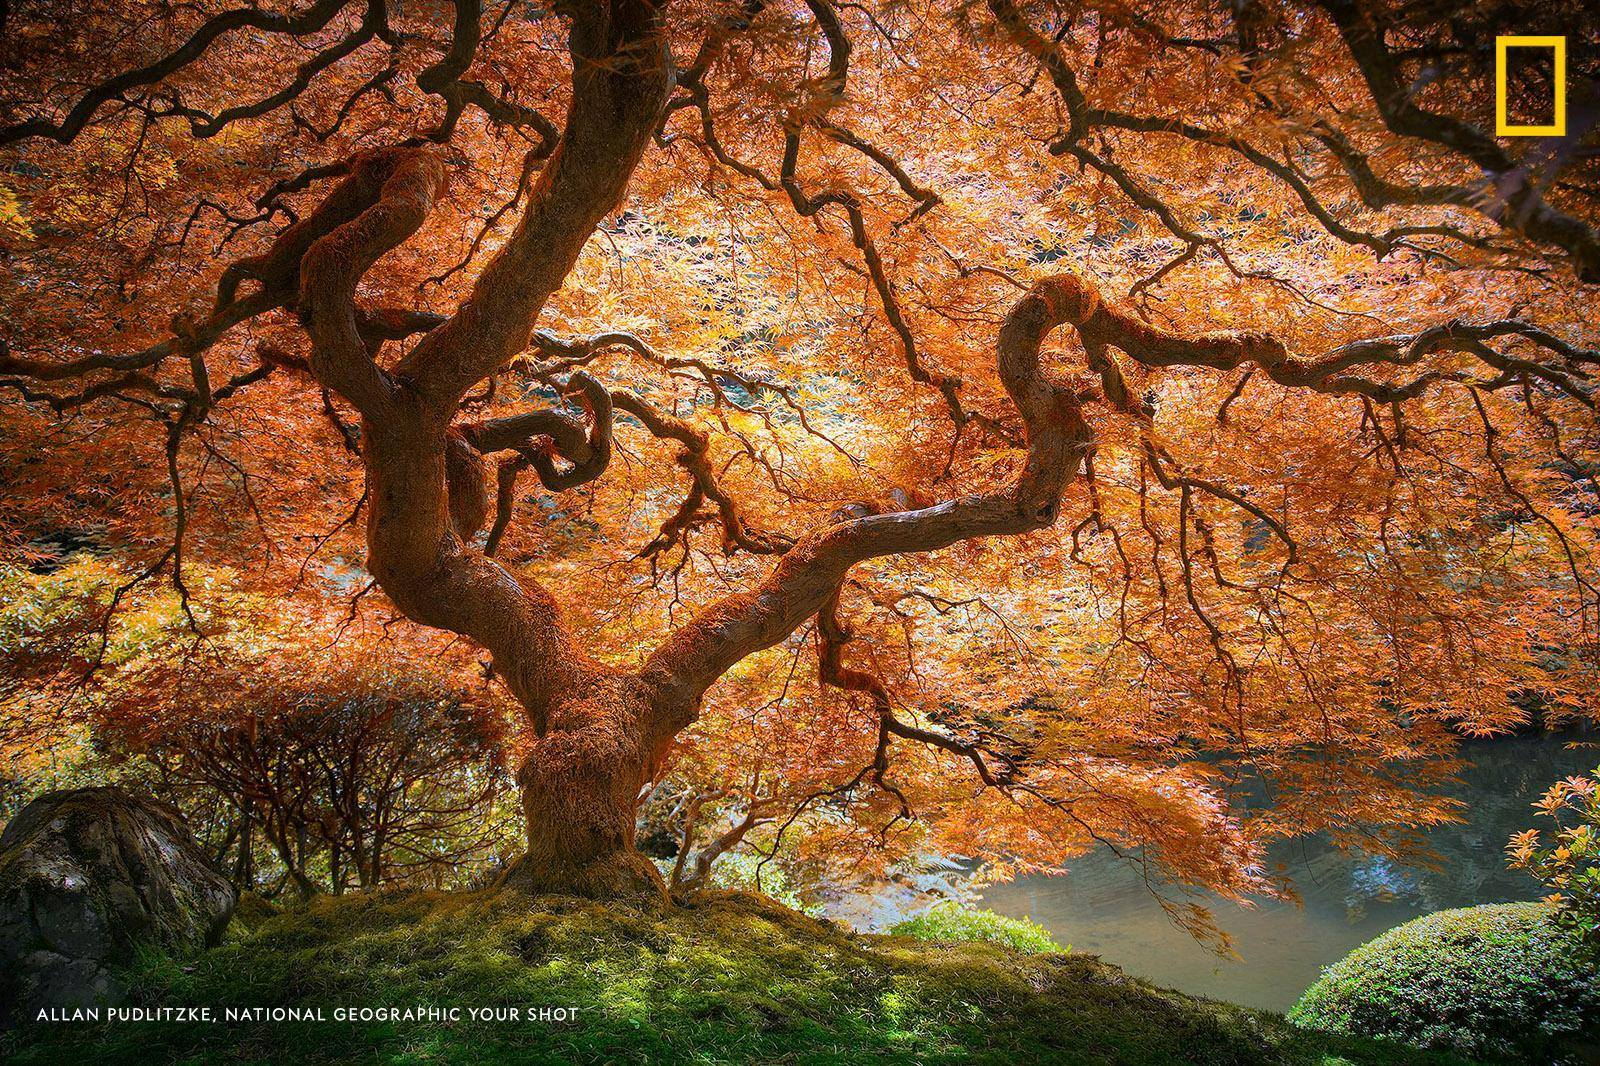 """""""My favorite part about trees is that we all see something different in them,"""" writes Your Shot photographer Allan Pudlitzke. """"The more unique and intricate the tree, the more is hidden within its being."""" https://on.natgeo.com/2Fu5Vcs"""